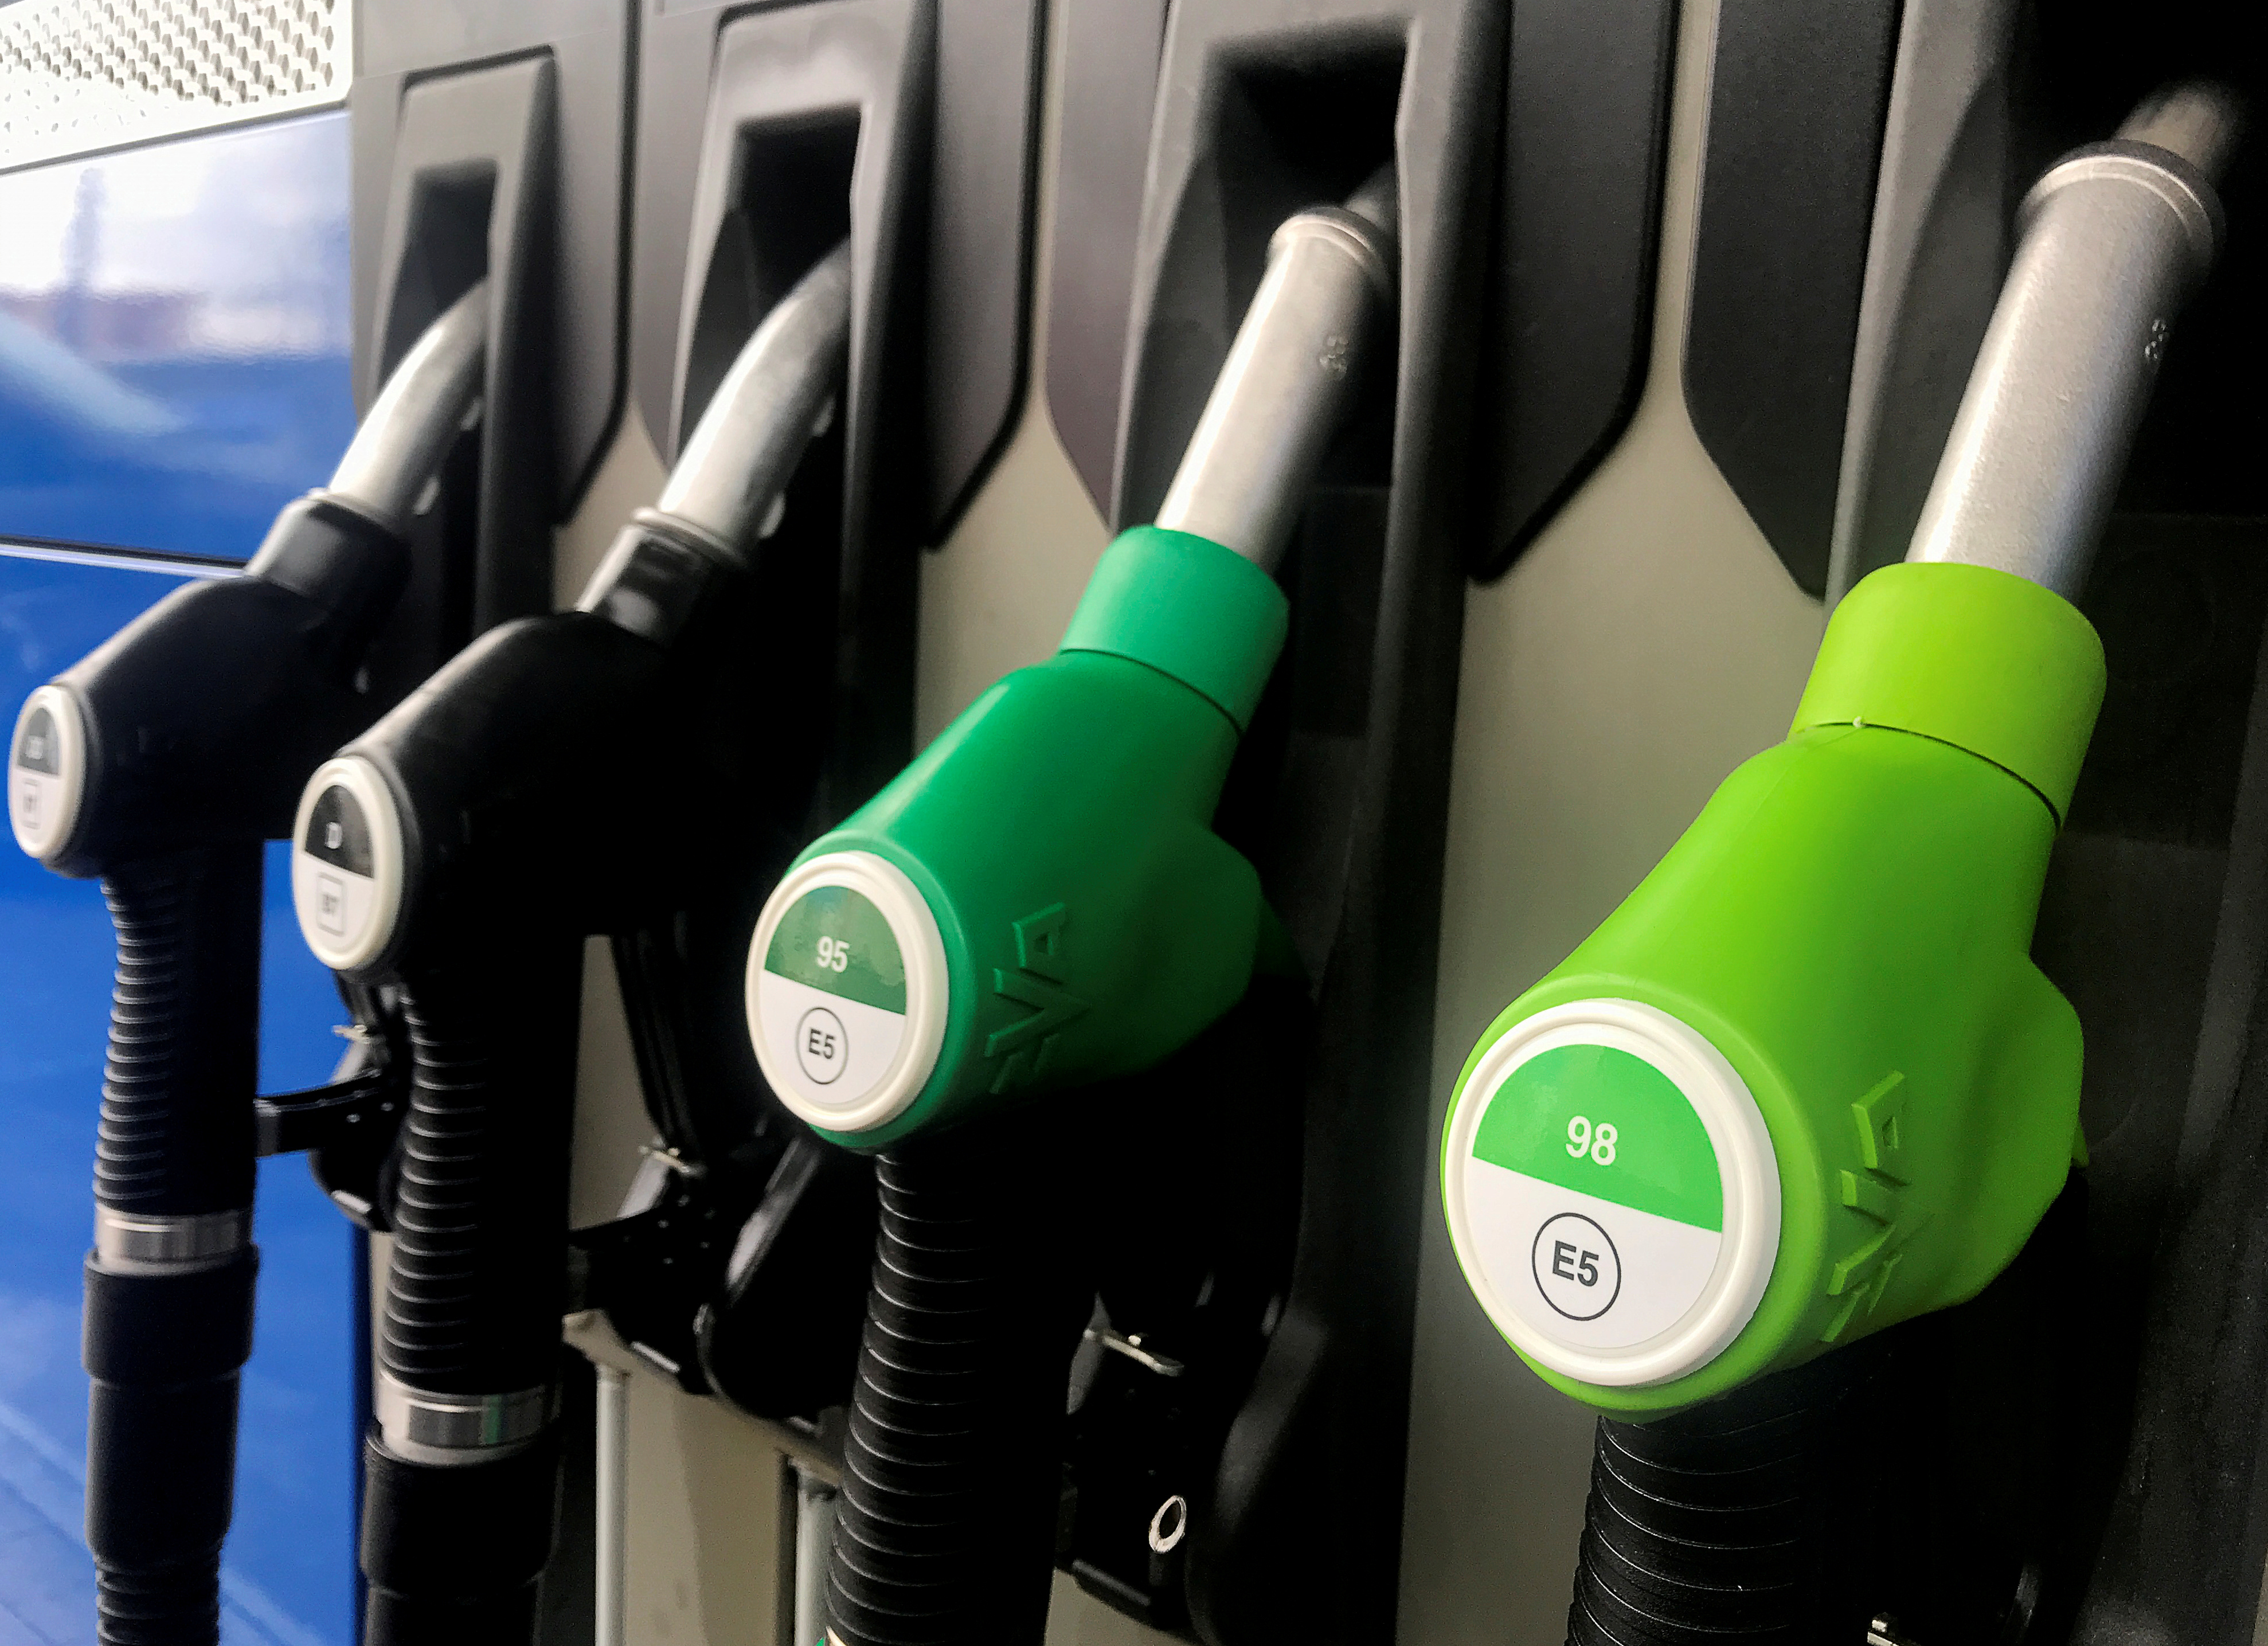 Fuel nozzles with new European labels to standardise pumps in the EU zone are seen at a petrol station in Madrid, Spain, October 11, 2018. REUTERS/Sergio Perez/File Photo